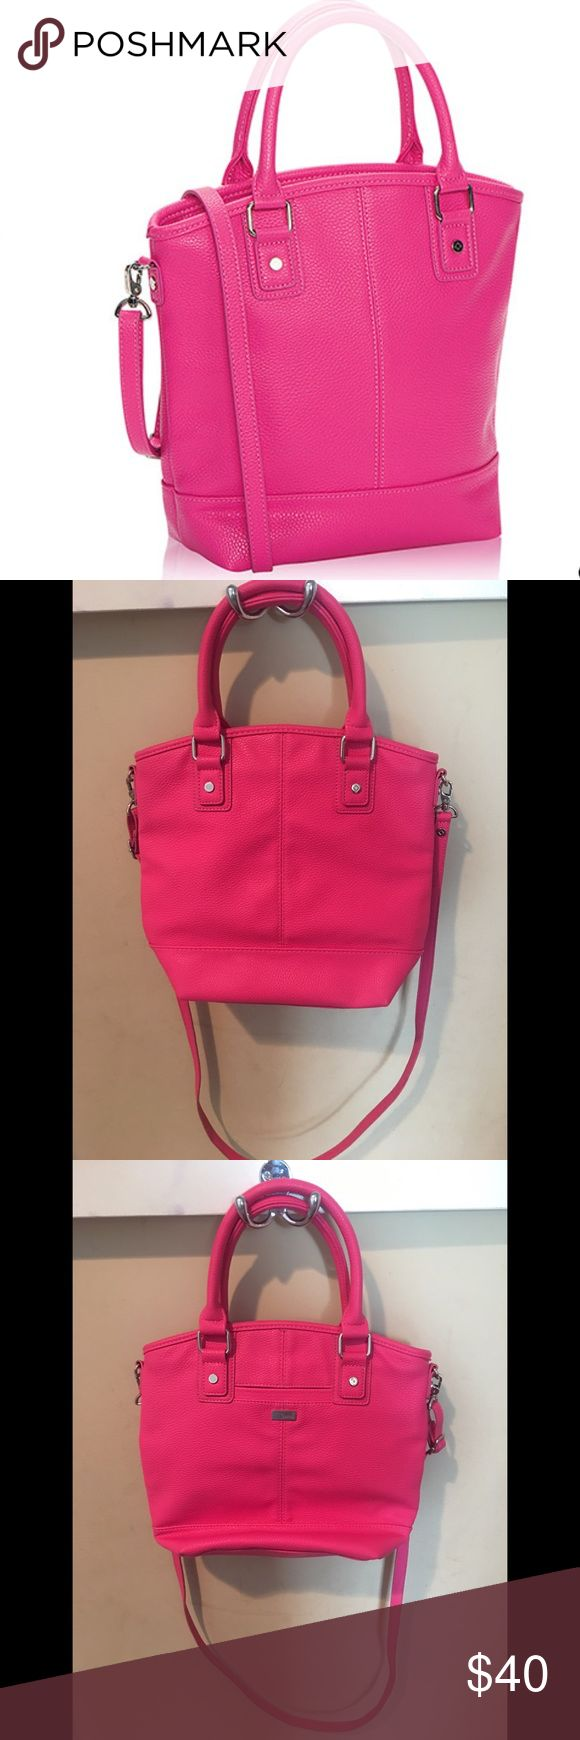 """Thirty-One Paris Handbag Selling my Thirty-One Paris handbag from the Jewell collection. Such an adorable bag, great condition! I just need to declutter! This bag is in the color """"Candy Pink Pebble."""" Approximately 11.5""""H x 8.75""""L x 3.5""""D. 😊 Thirty-One Bags Totes"""